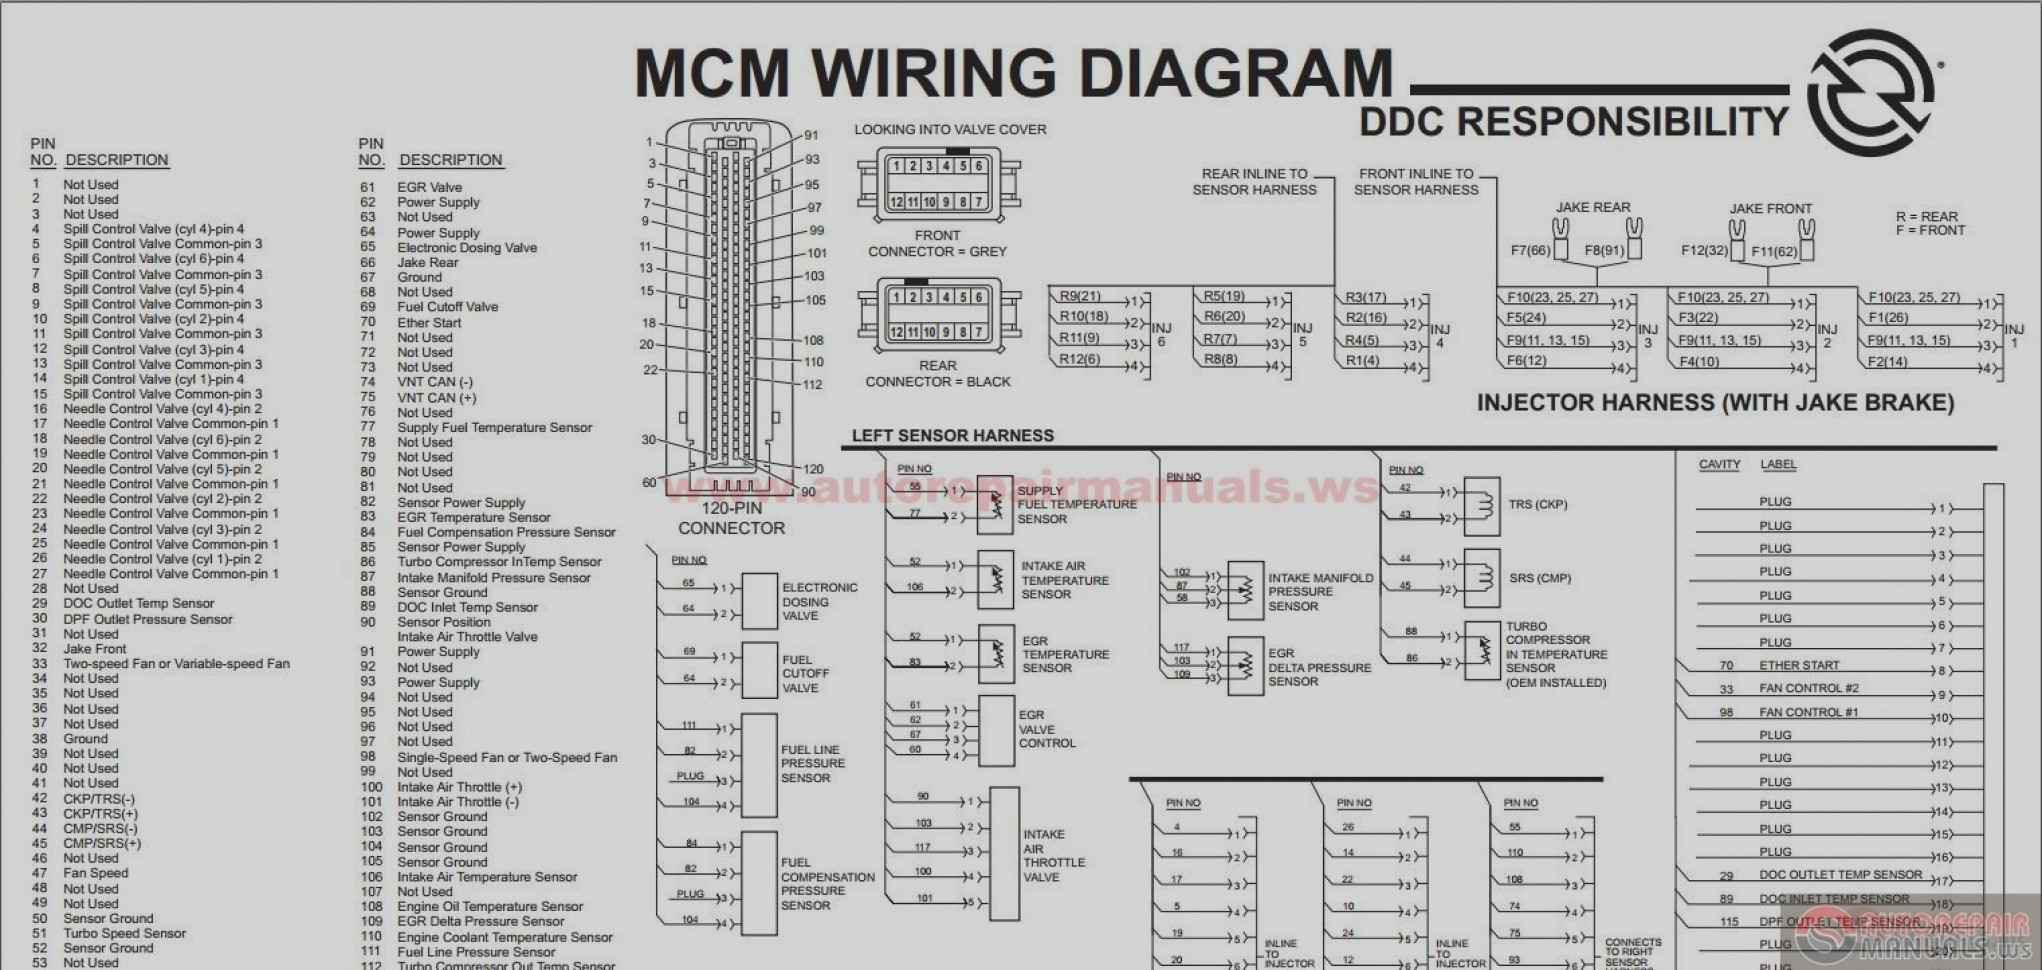 60 series ecm pins diagram wiring diagram todaysddec iv wiring diagram wiring schematic for detroit 60 engine diagram 60 series ecm pins diagram